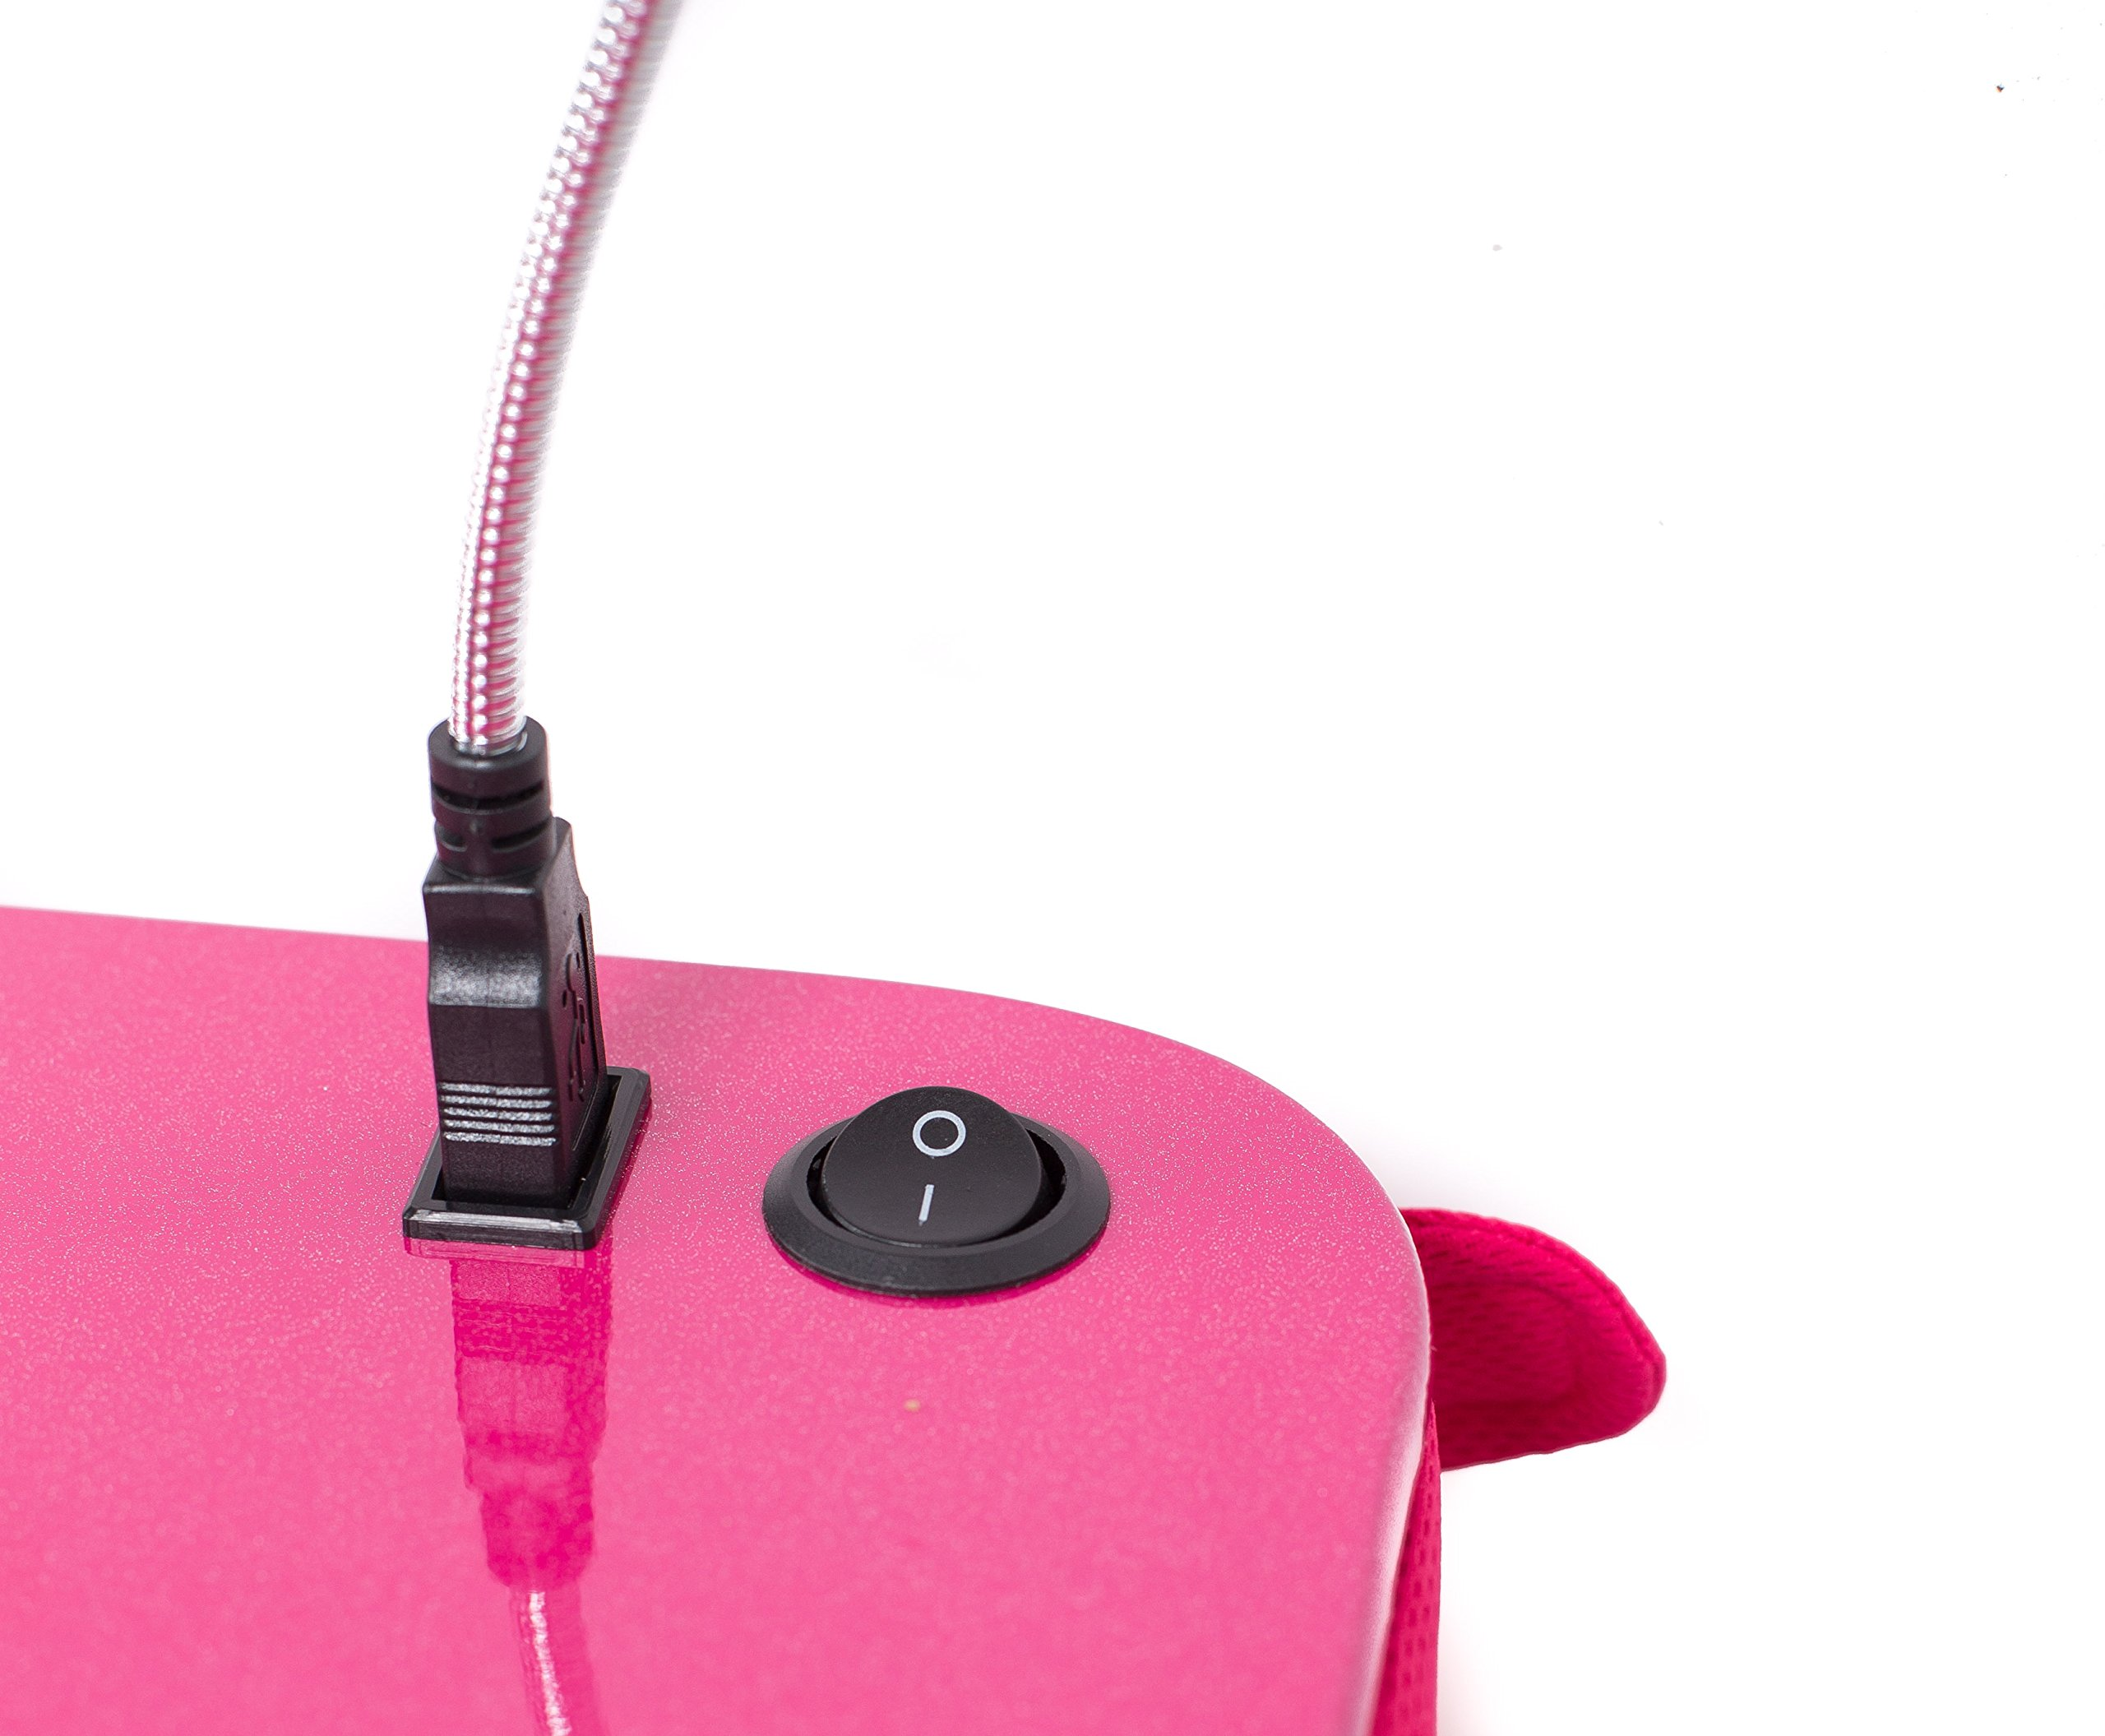 Sofia + Sam Lap Desk with USB Light (Pink)   Memory Foam Cushion   Supports Laptops Up To 17 Inches by Sofia + Sam (Image #4)